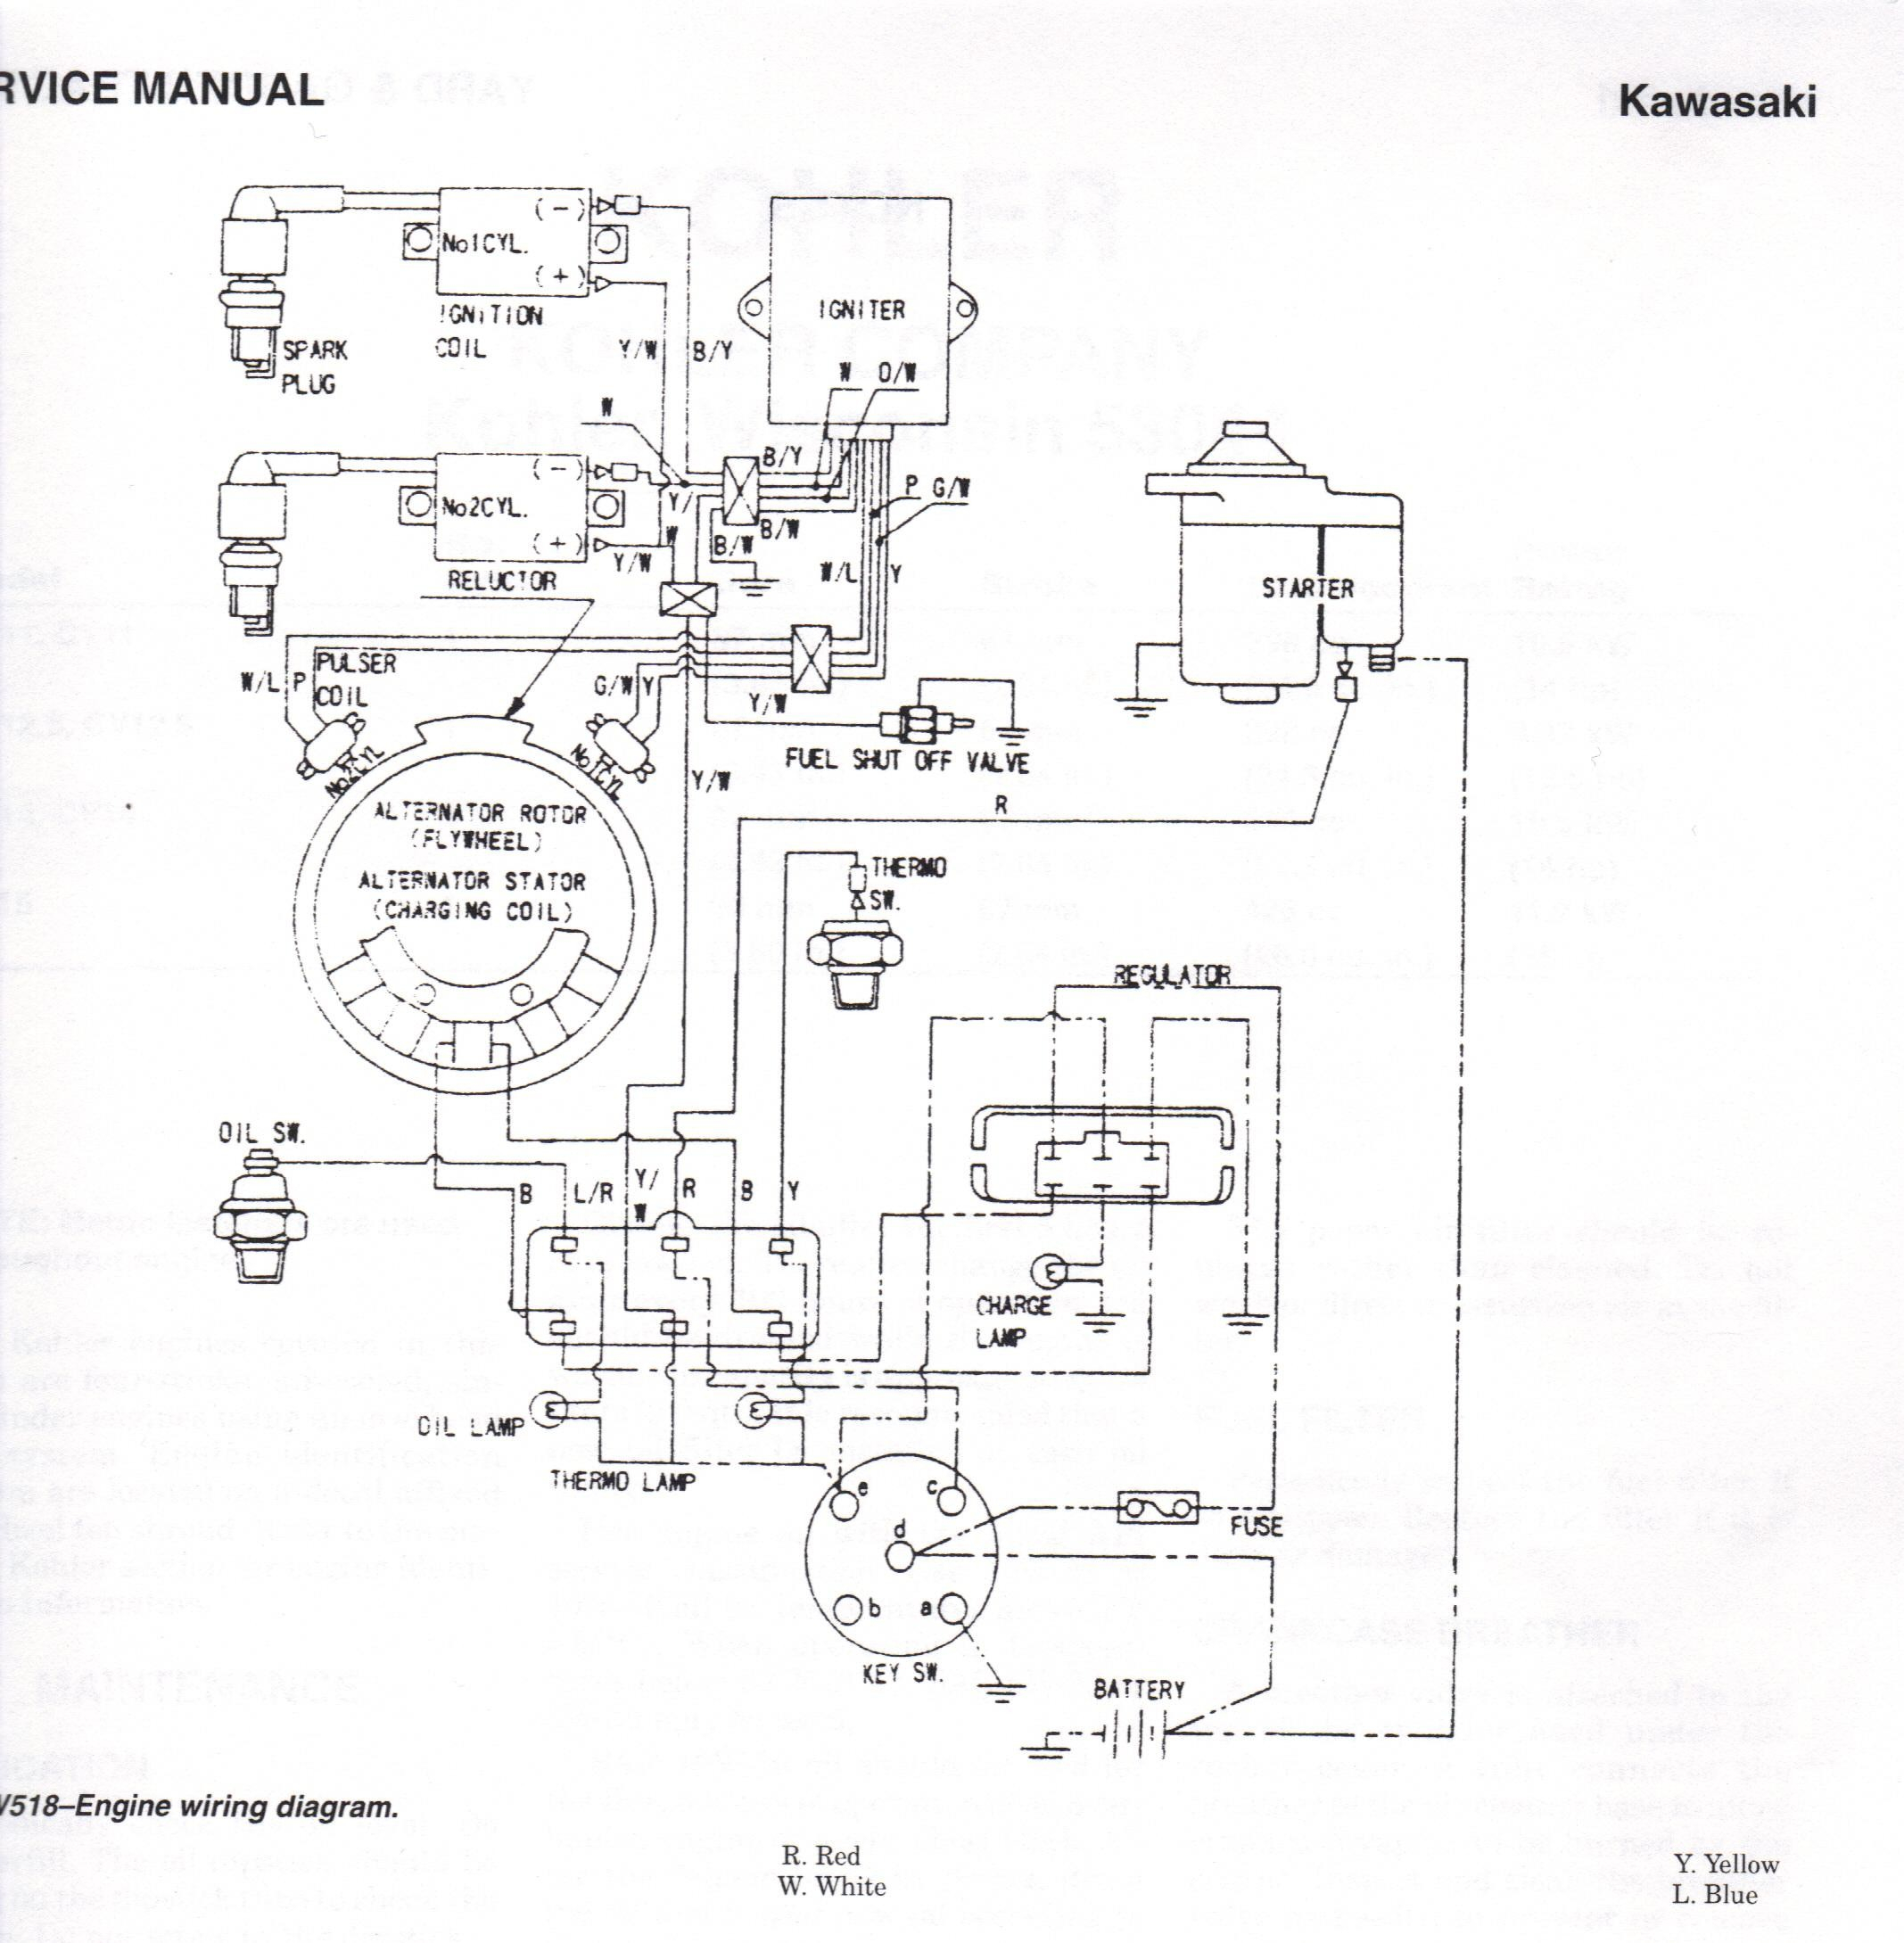 john deere wiring diagrams john deere gator tx wiring diagram sample john deere engine diagrams